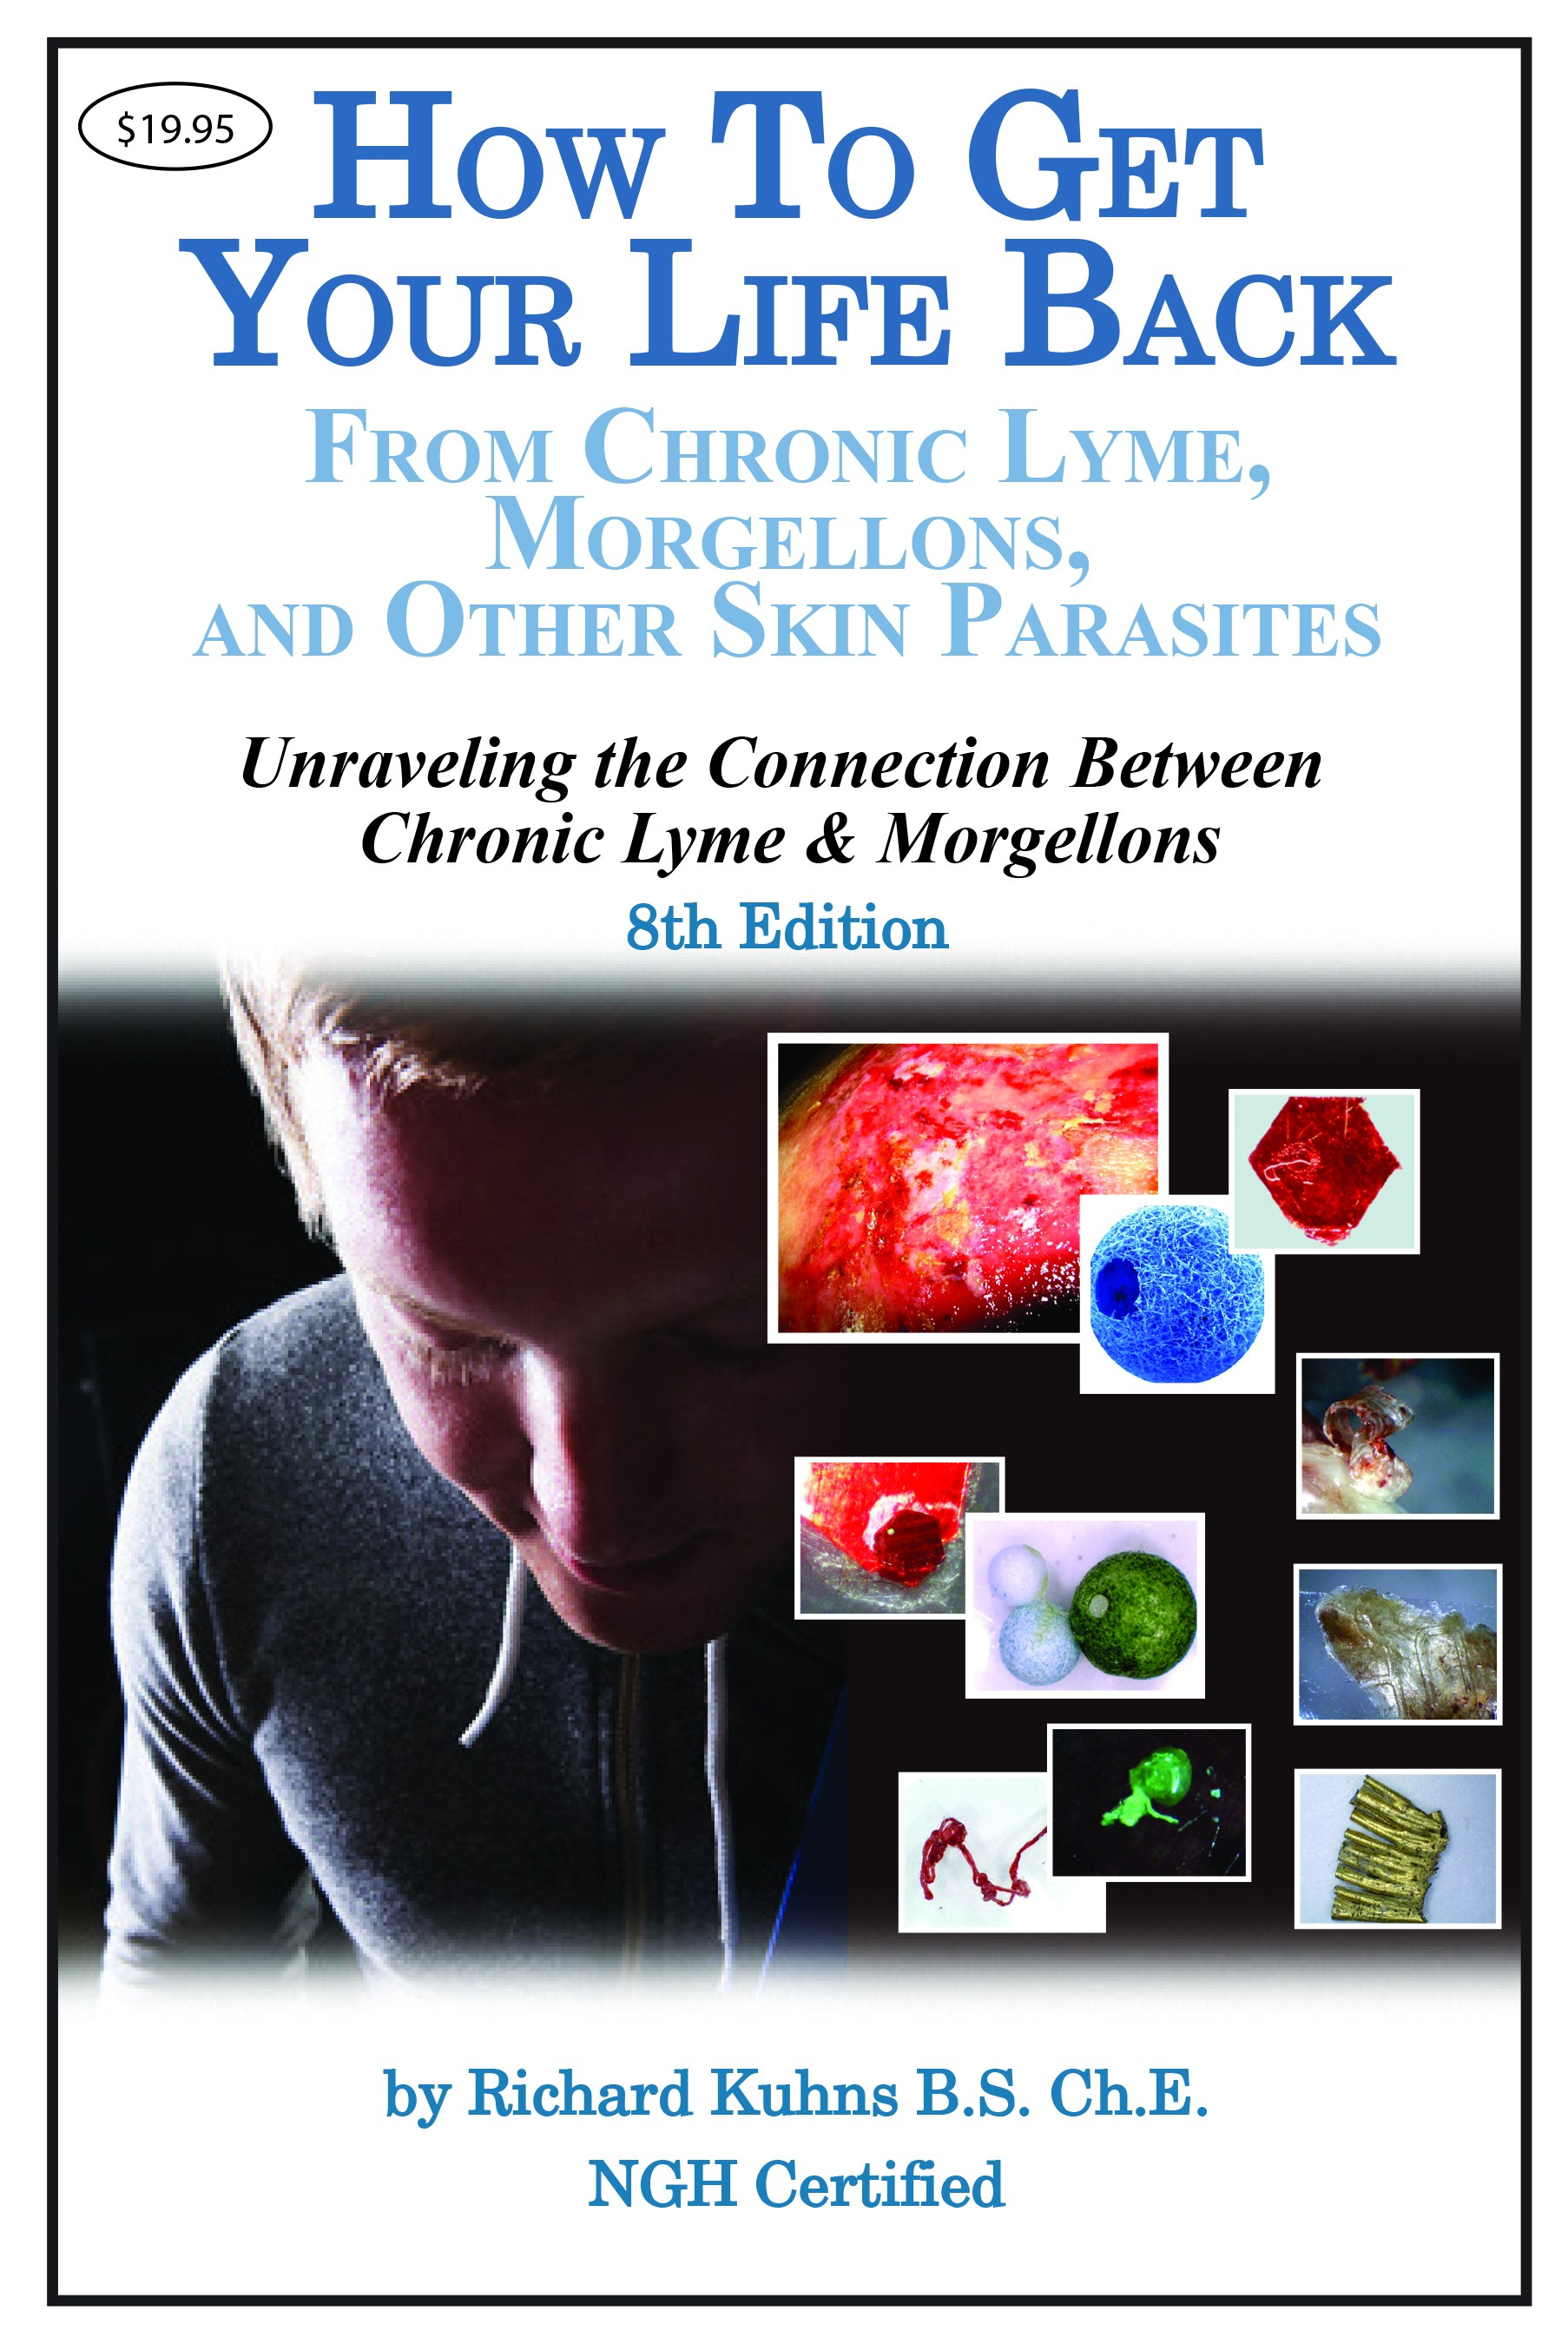 How To Get Your Life Back From Chronic Lyme, Morgellons, and Other Skin Parasites - ebook